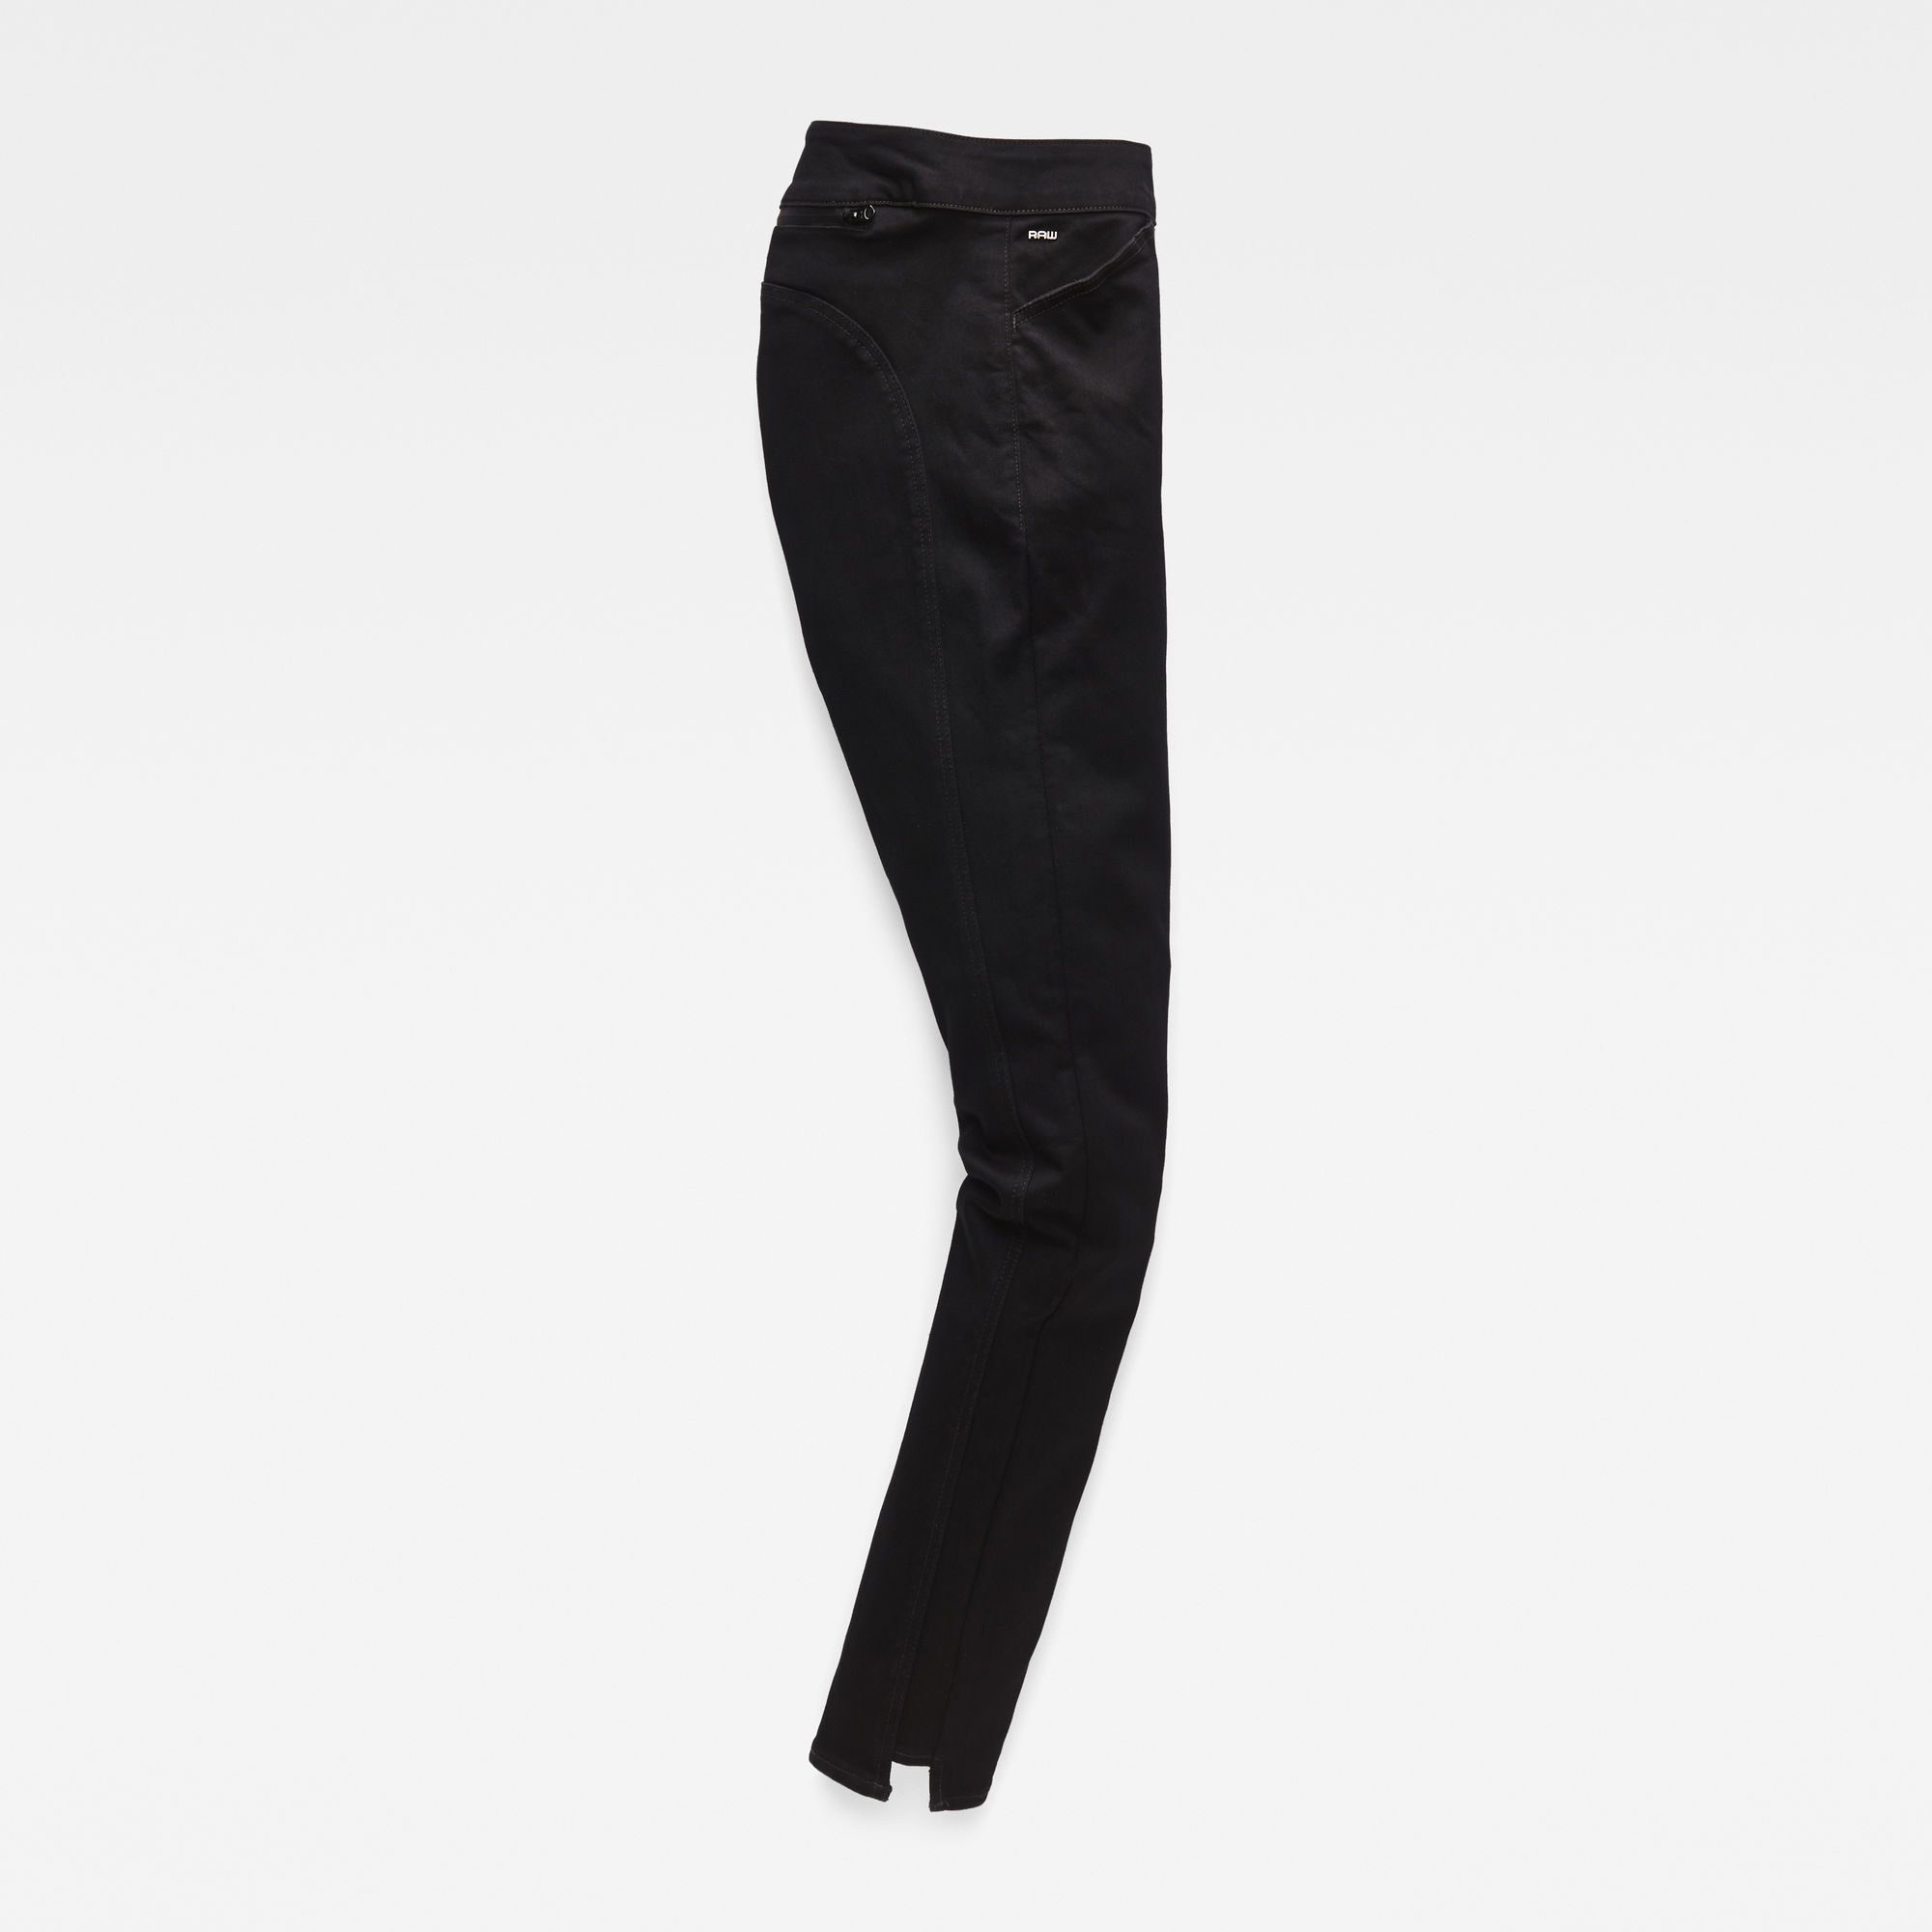 G-Star RAW High Jegging Ankle Jeans